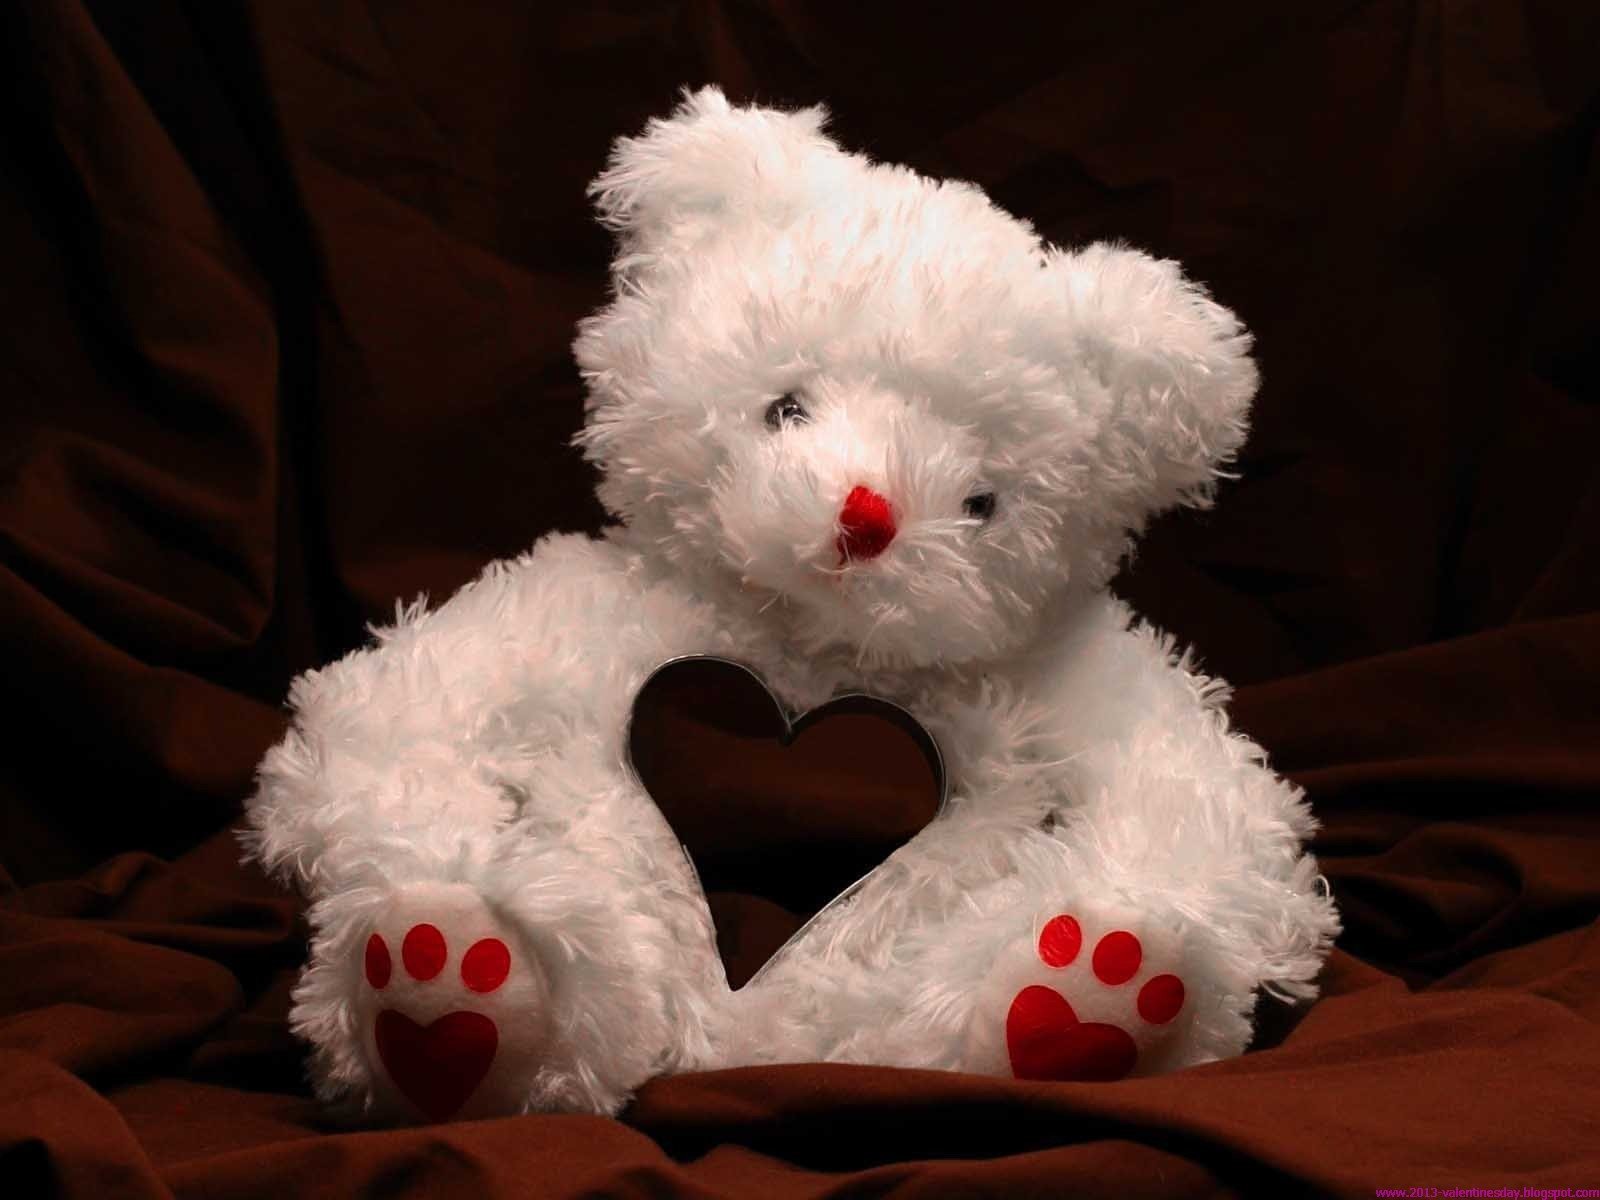 Love Teddy Bear Hd Wallpaper : happy teddy bear day hd wallpaper I Love You-Picture And Quotes